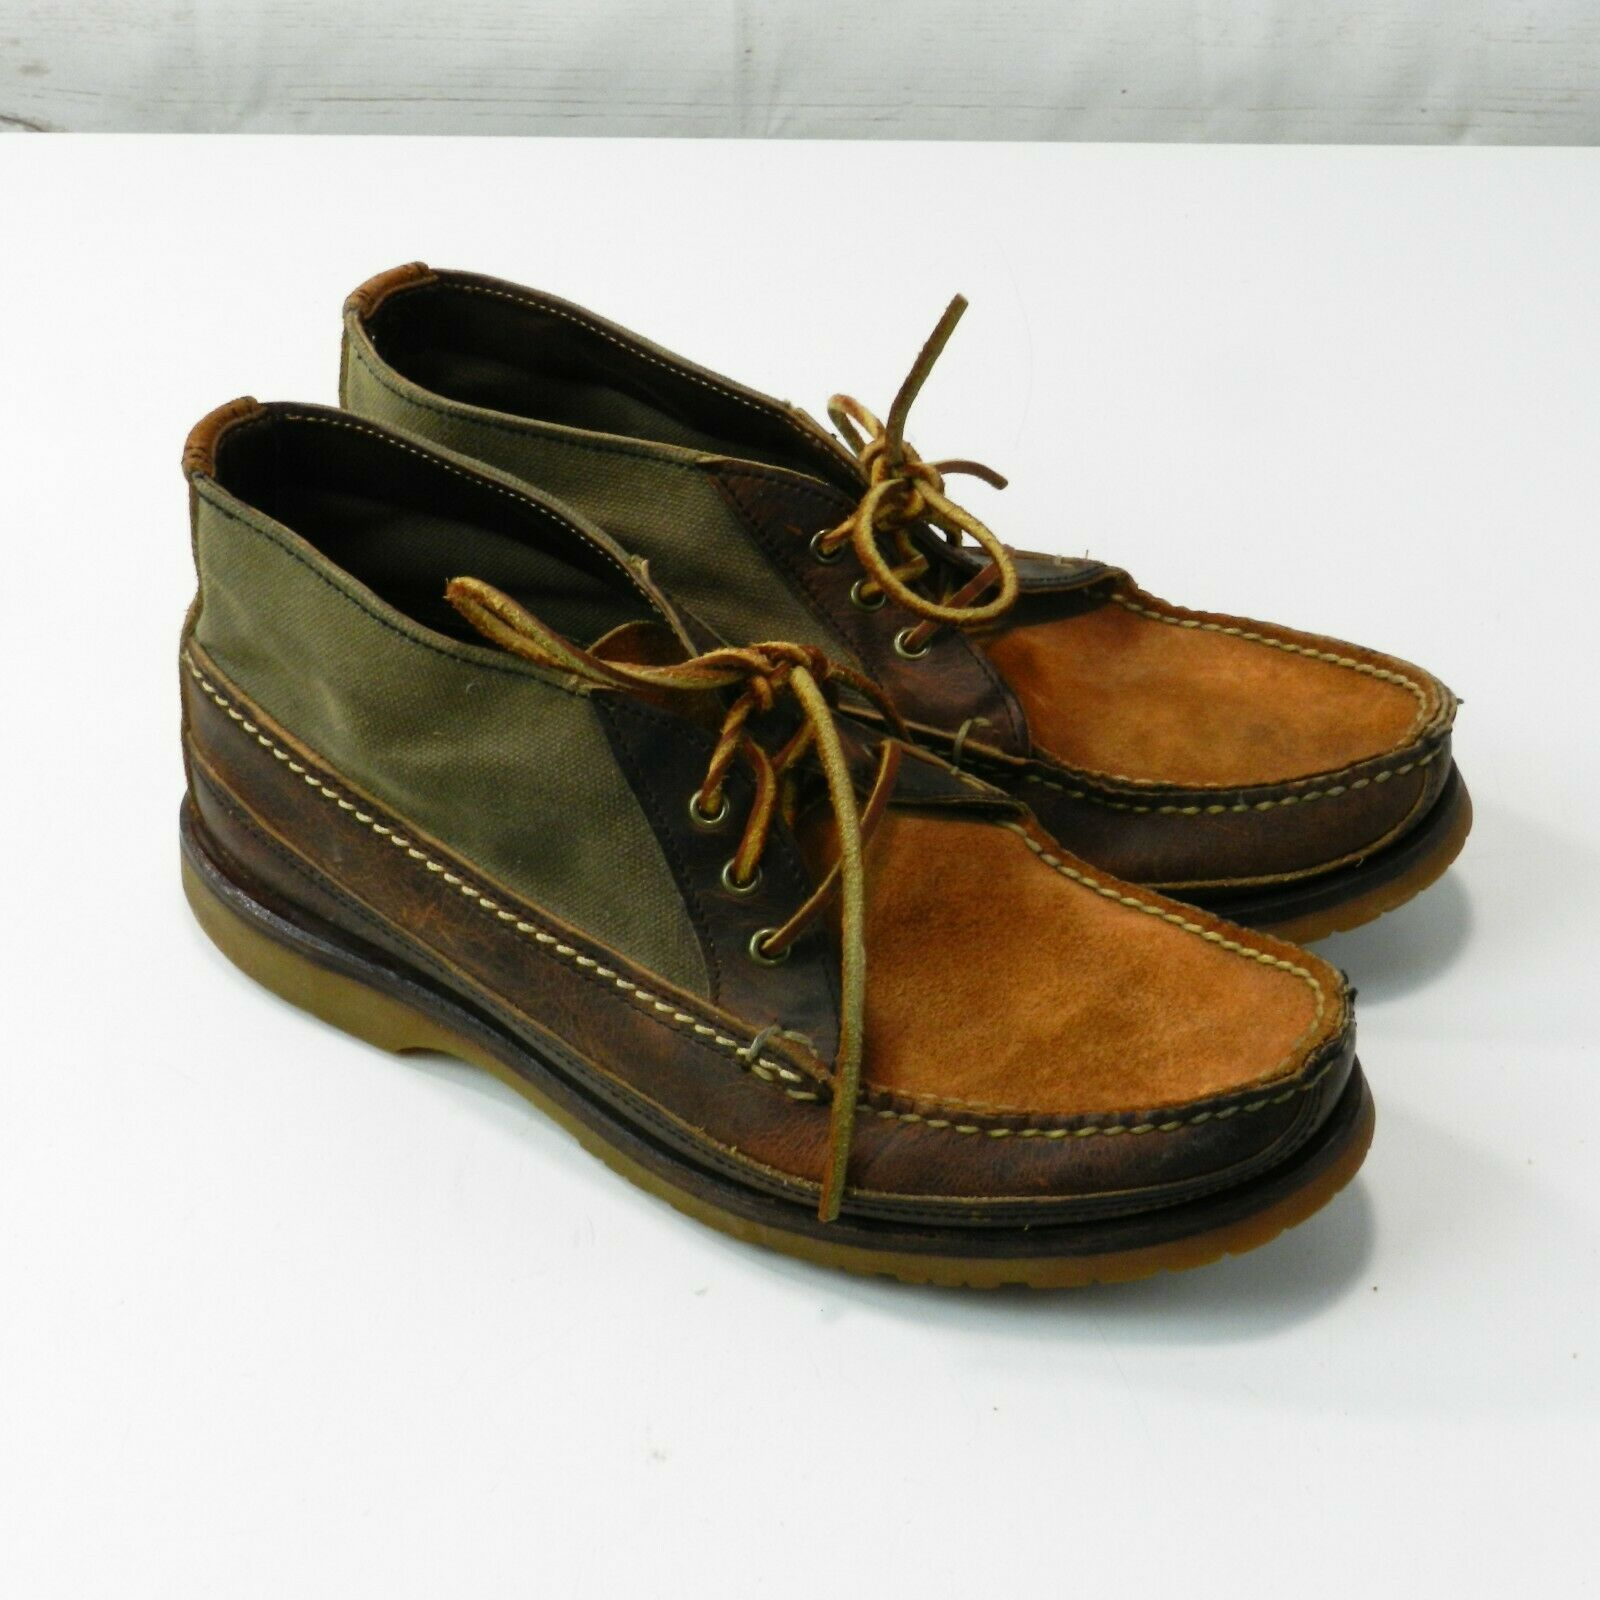 db168ff7a974e Red Wing Shoes 4591 Moc Toe Chukka Boots and 50 similar items